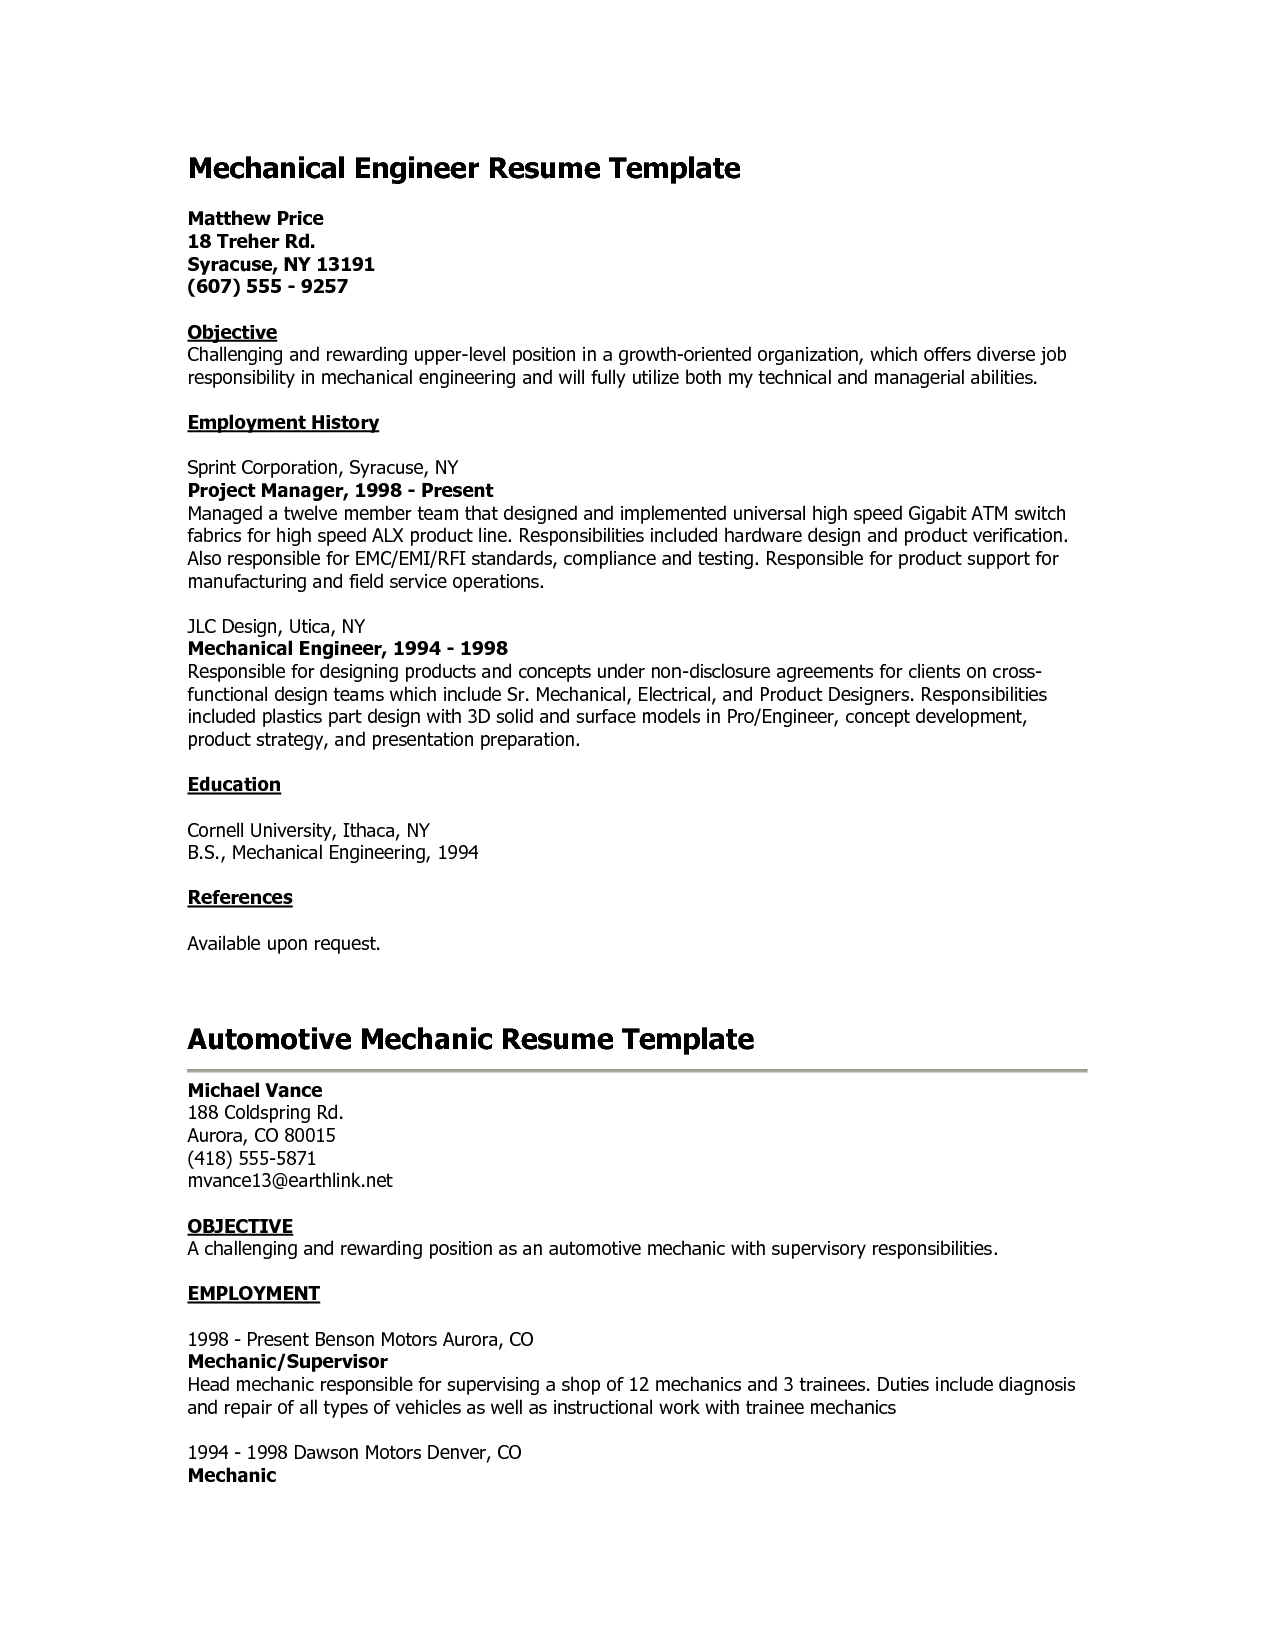 resume objective bank teller - Bank Teller Resume